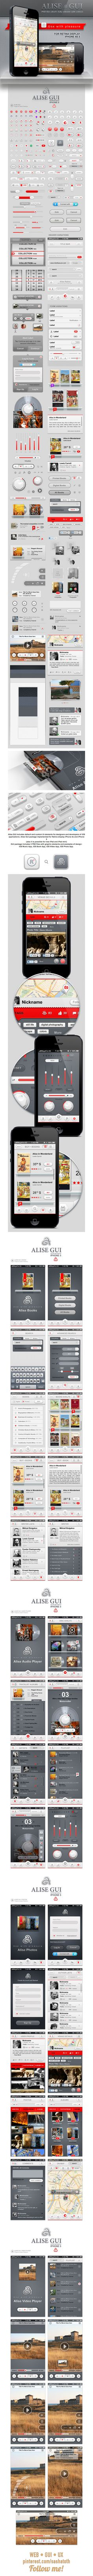 Alise iPhone GUI Pack / for Retina Display by Vadim Pleshkov, via Behance ••• Alise GUI includes default and custom UI elements for designers and developers of iOS applications.